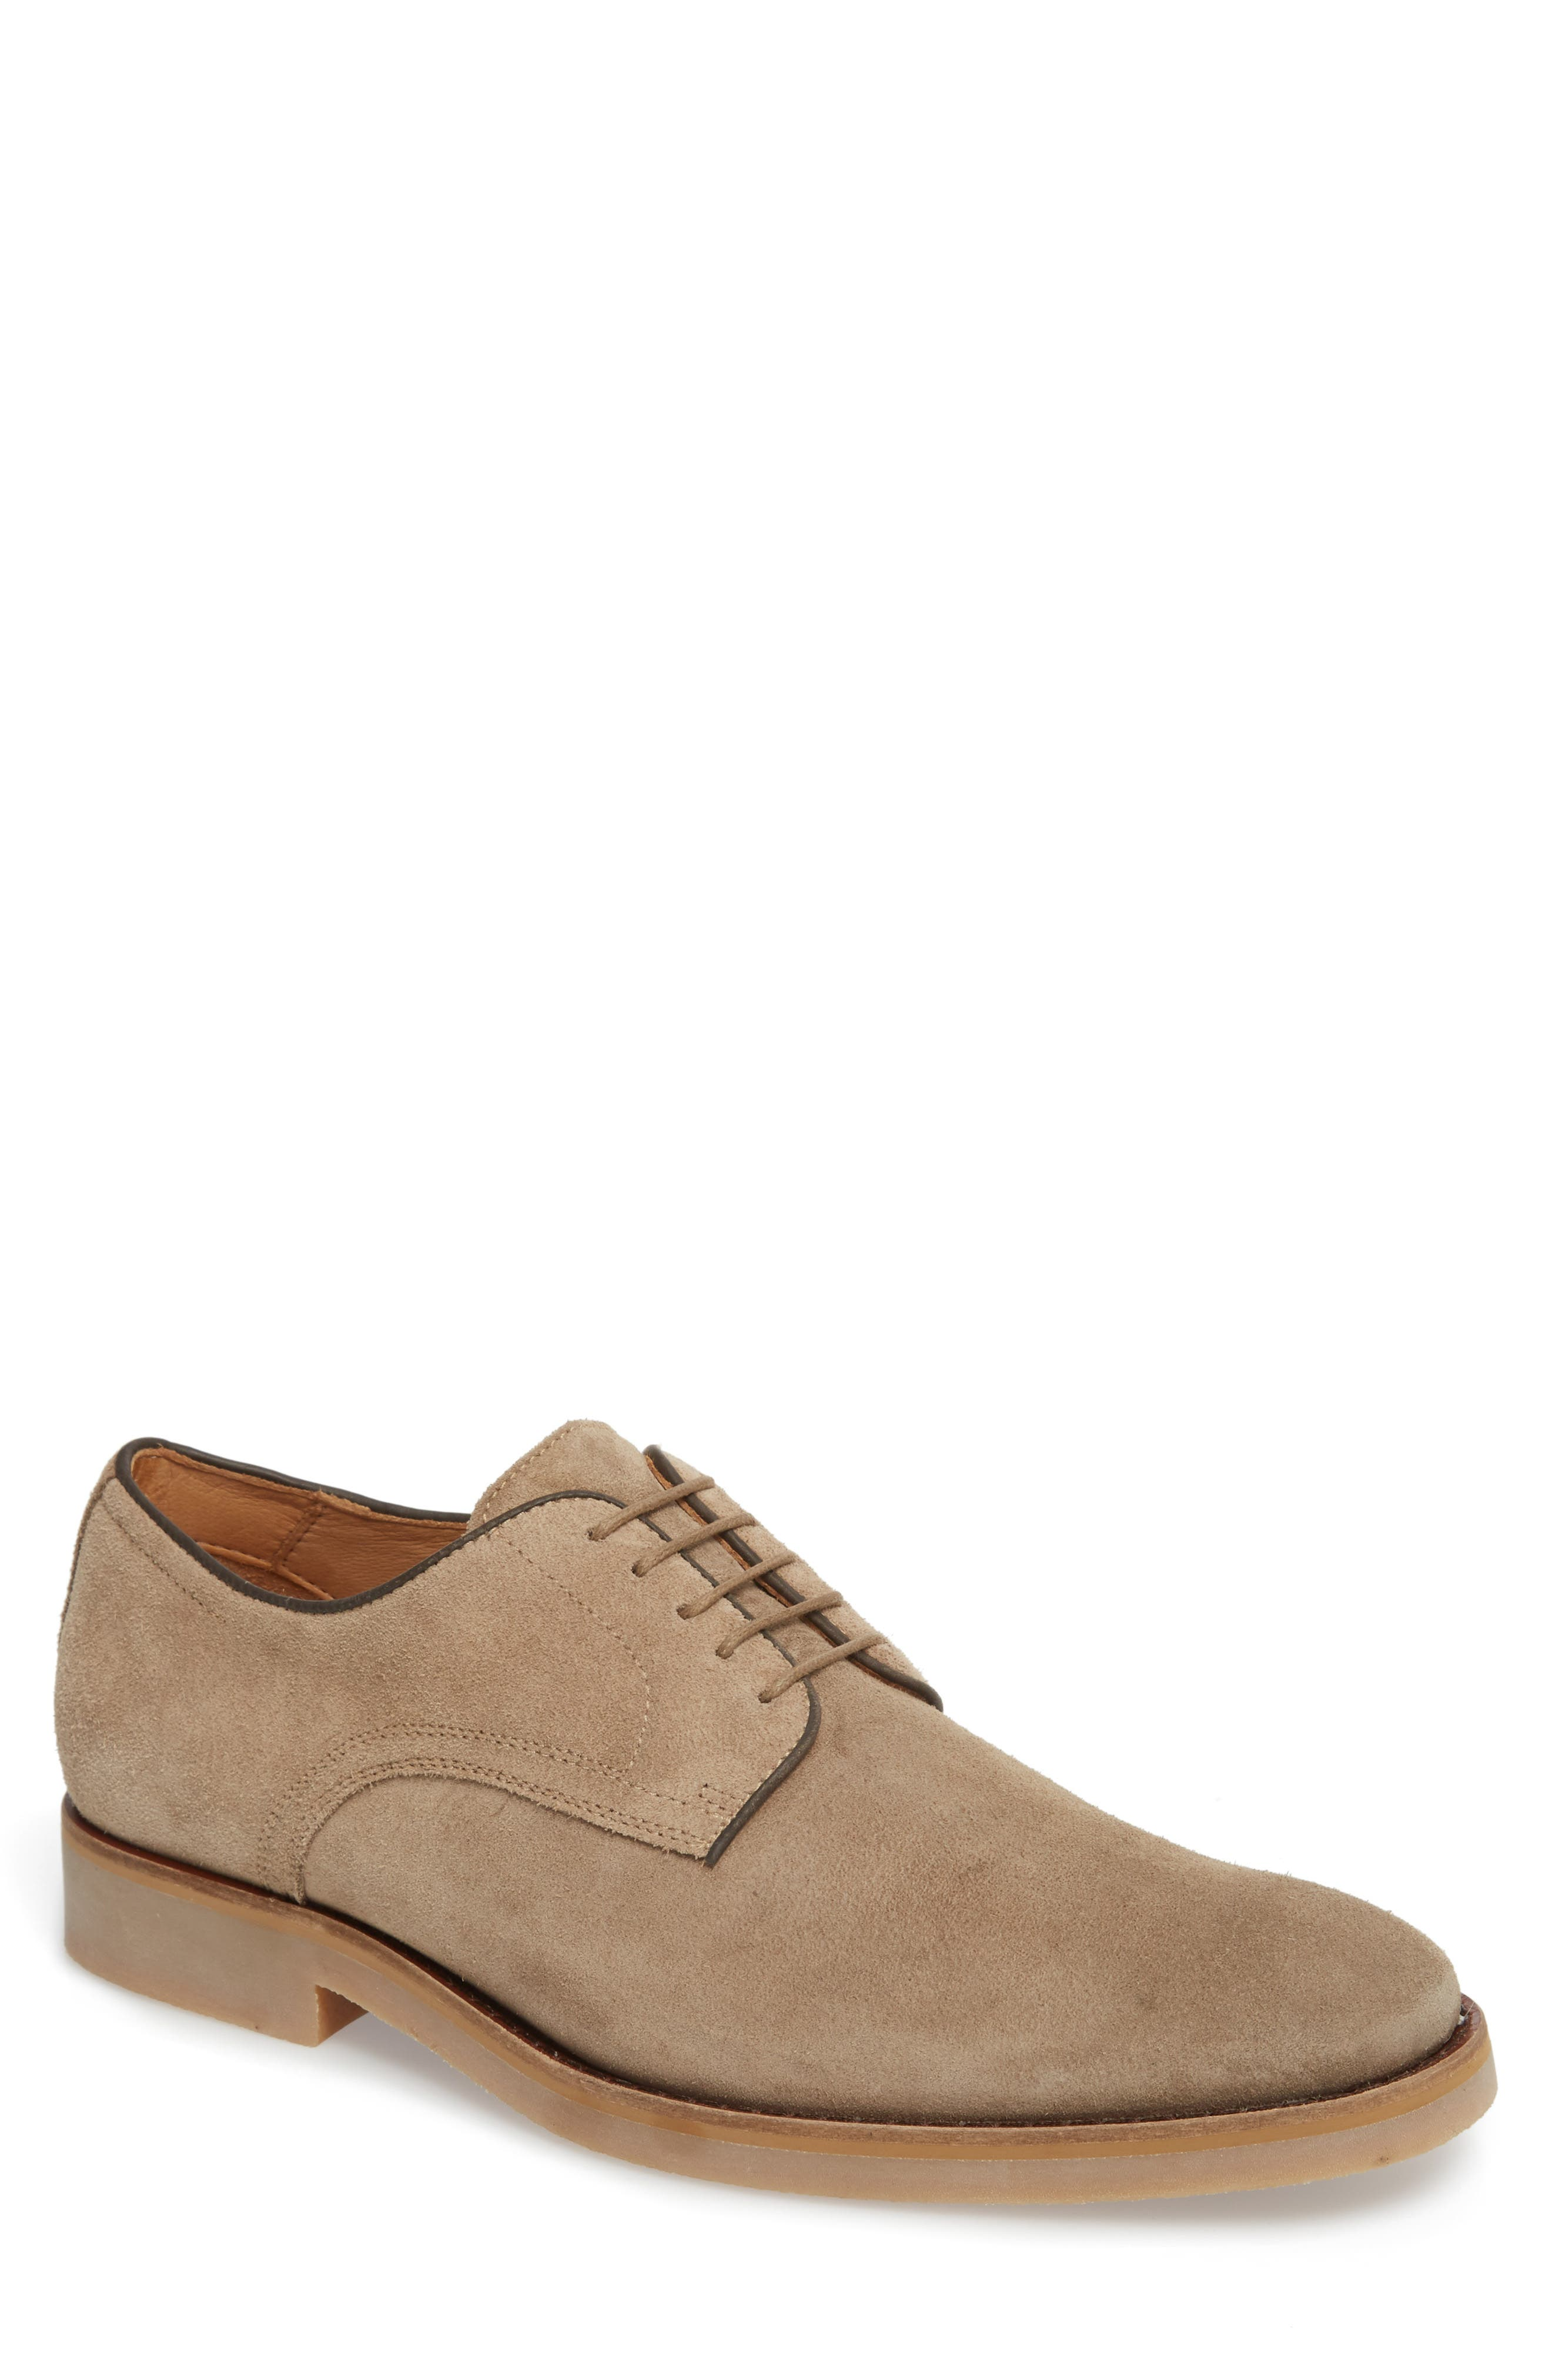 Santino Plain Toe Derby,                             Main thumbnail 1, color,                             Taupe Suede